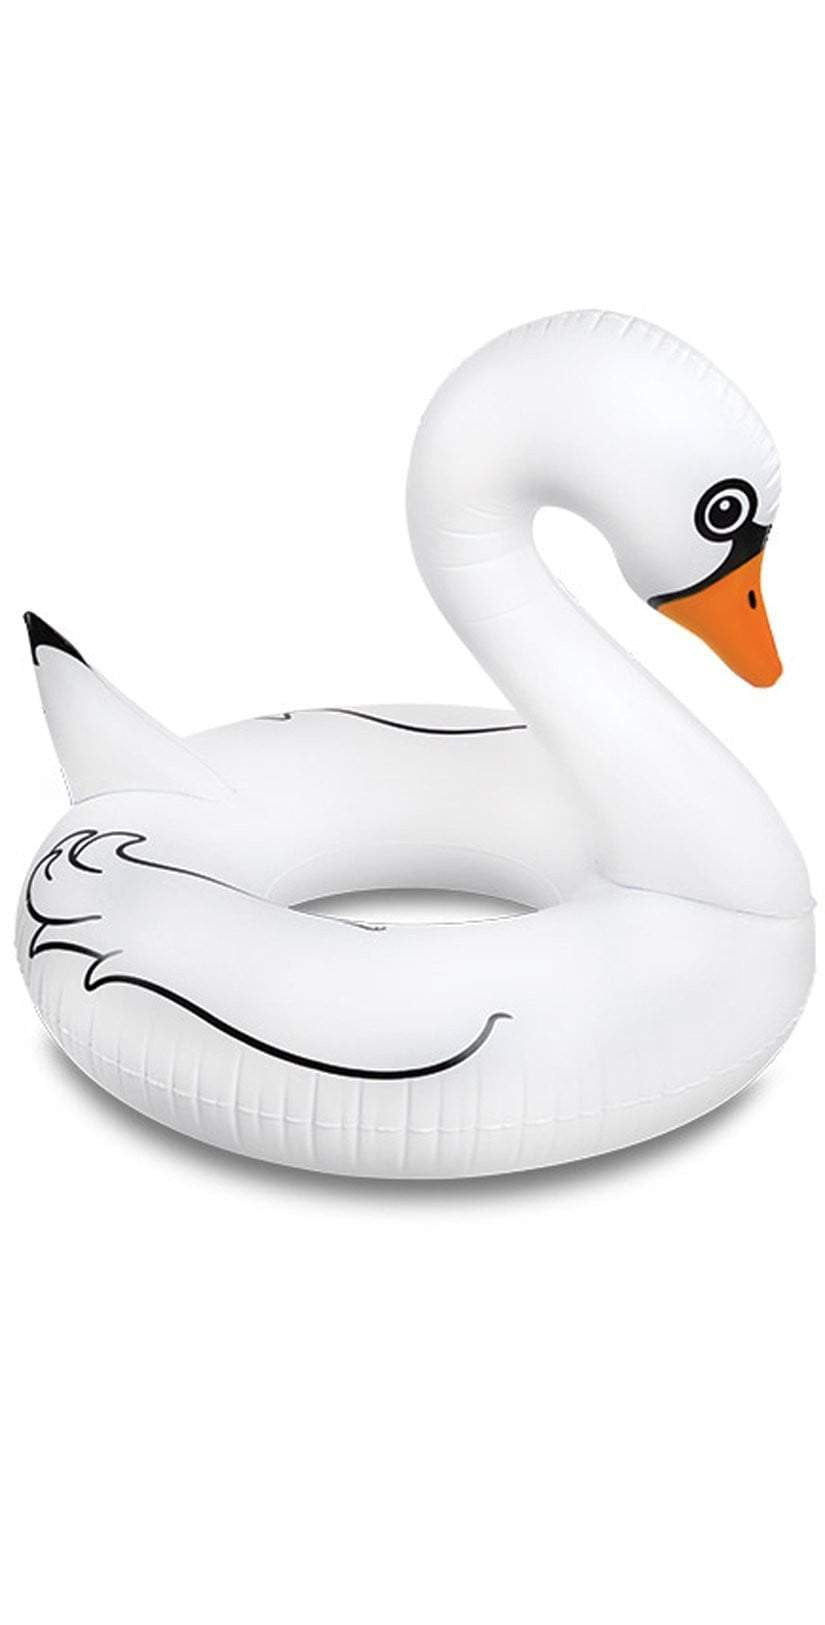 Big Mouth Giant White Swan Pool Float BMPF-0011: